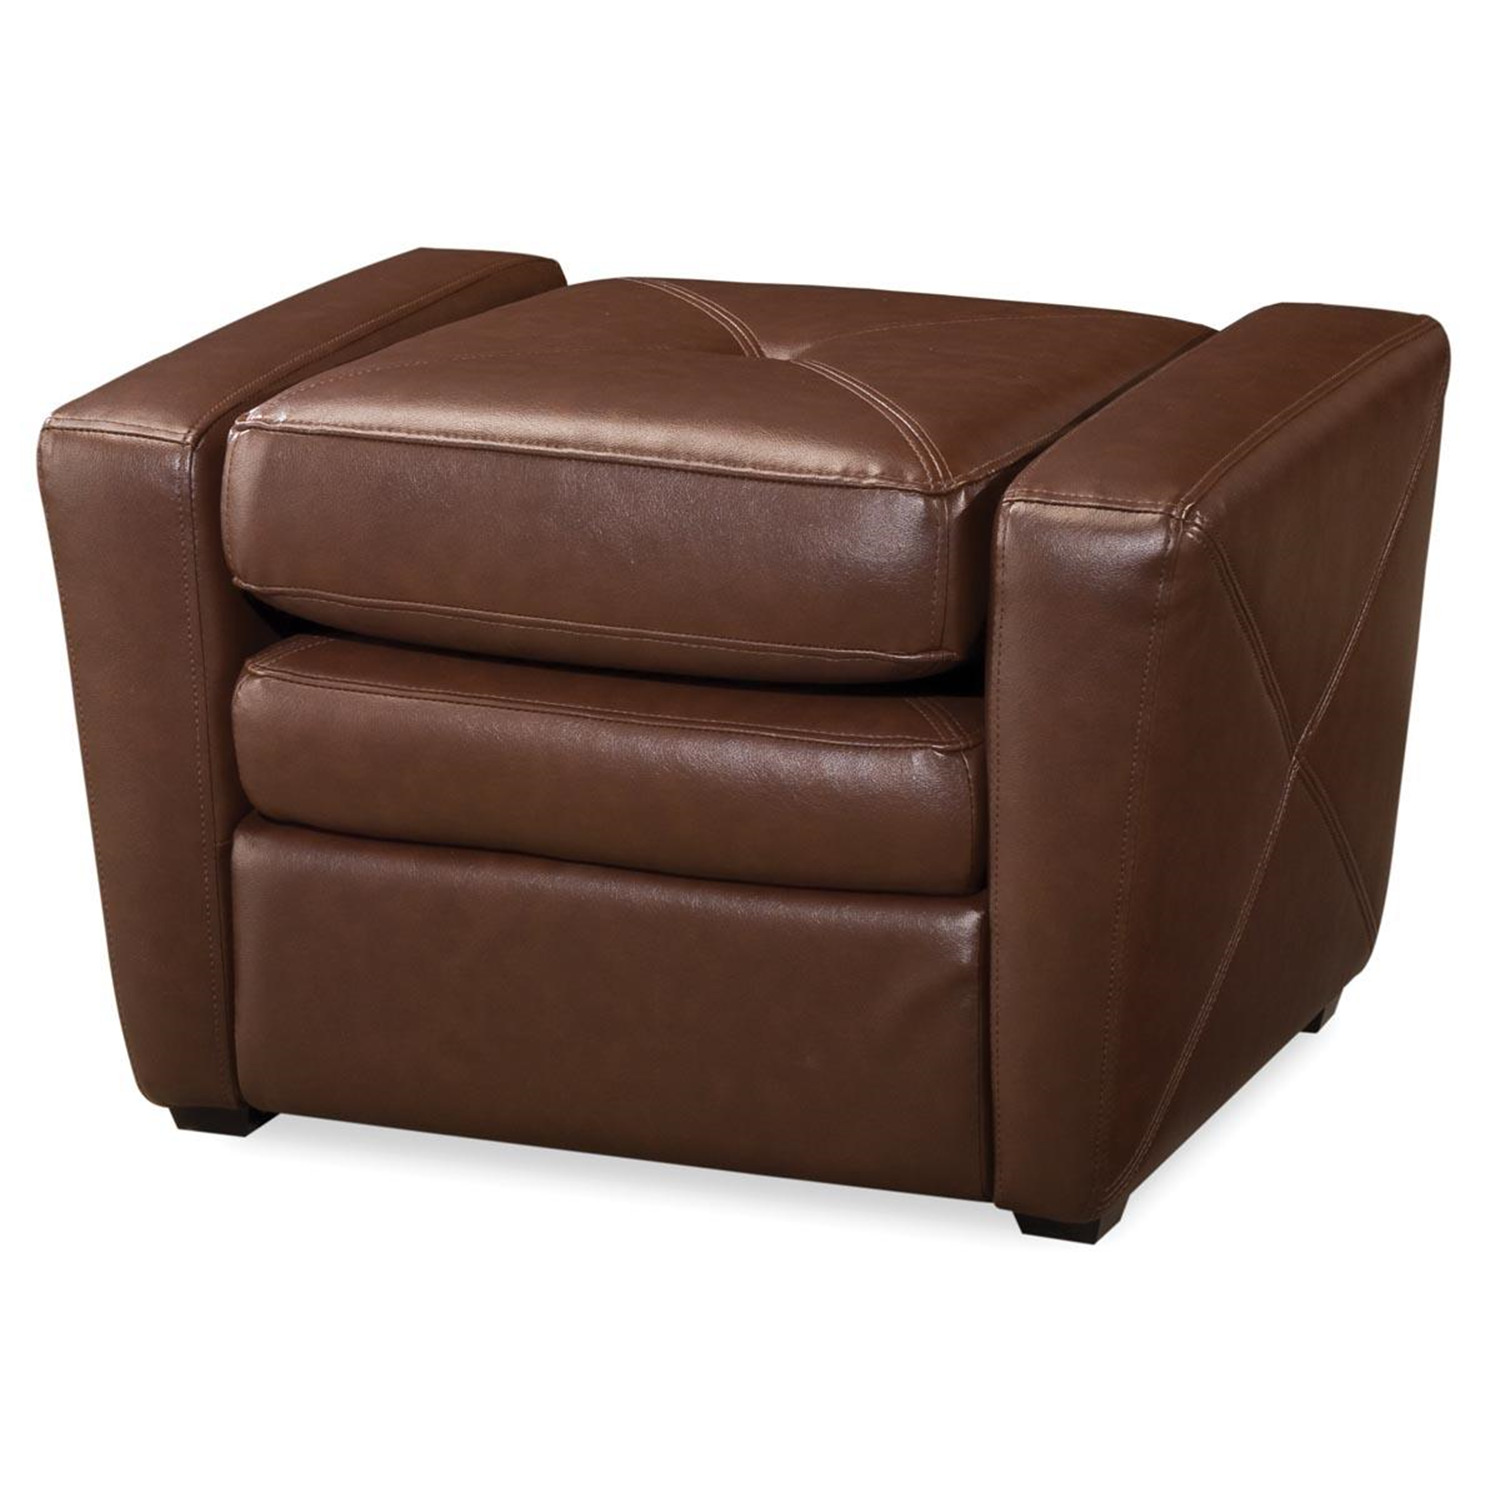 Home styles brown vinyl gaming chair ottoman by oj for Chair ottoman